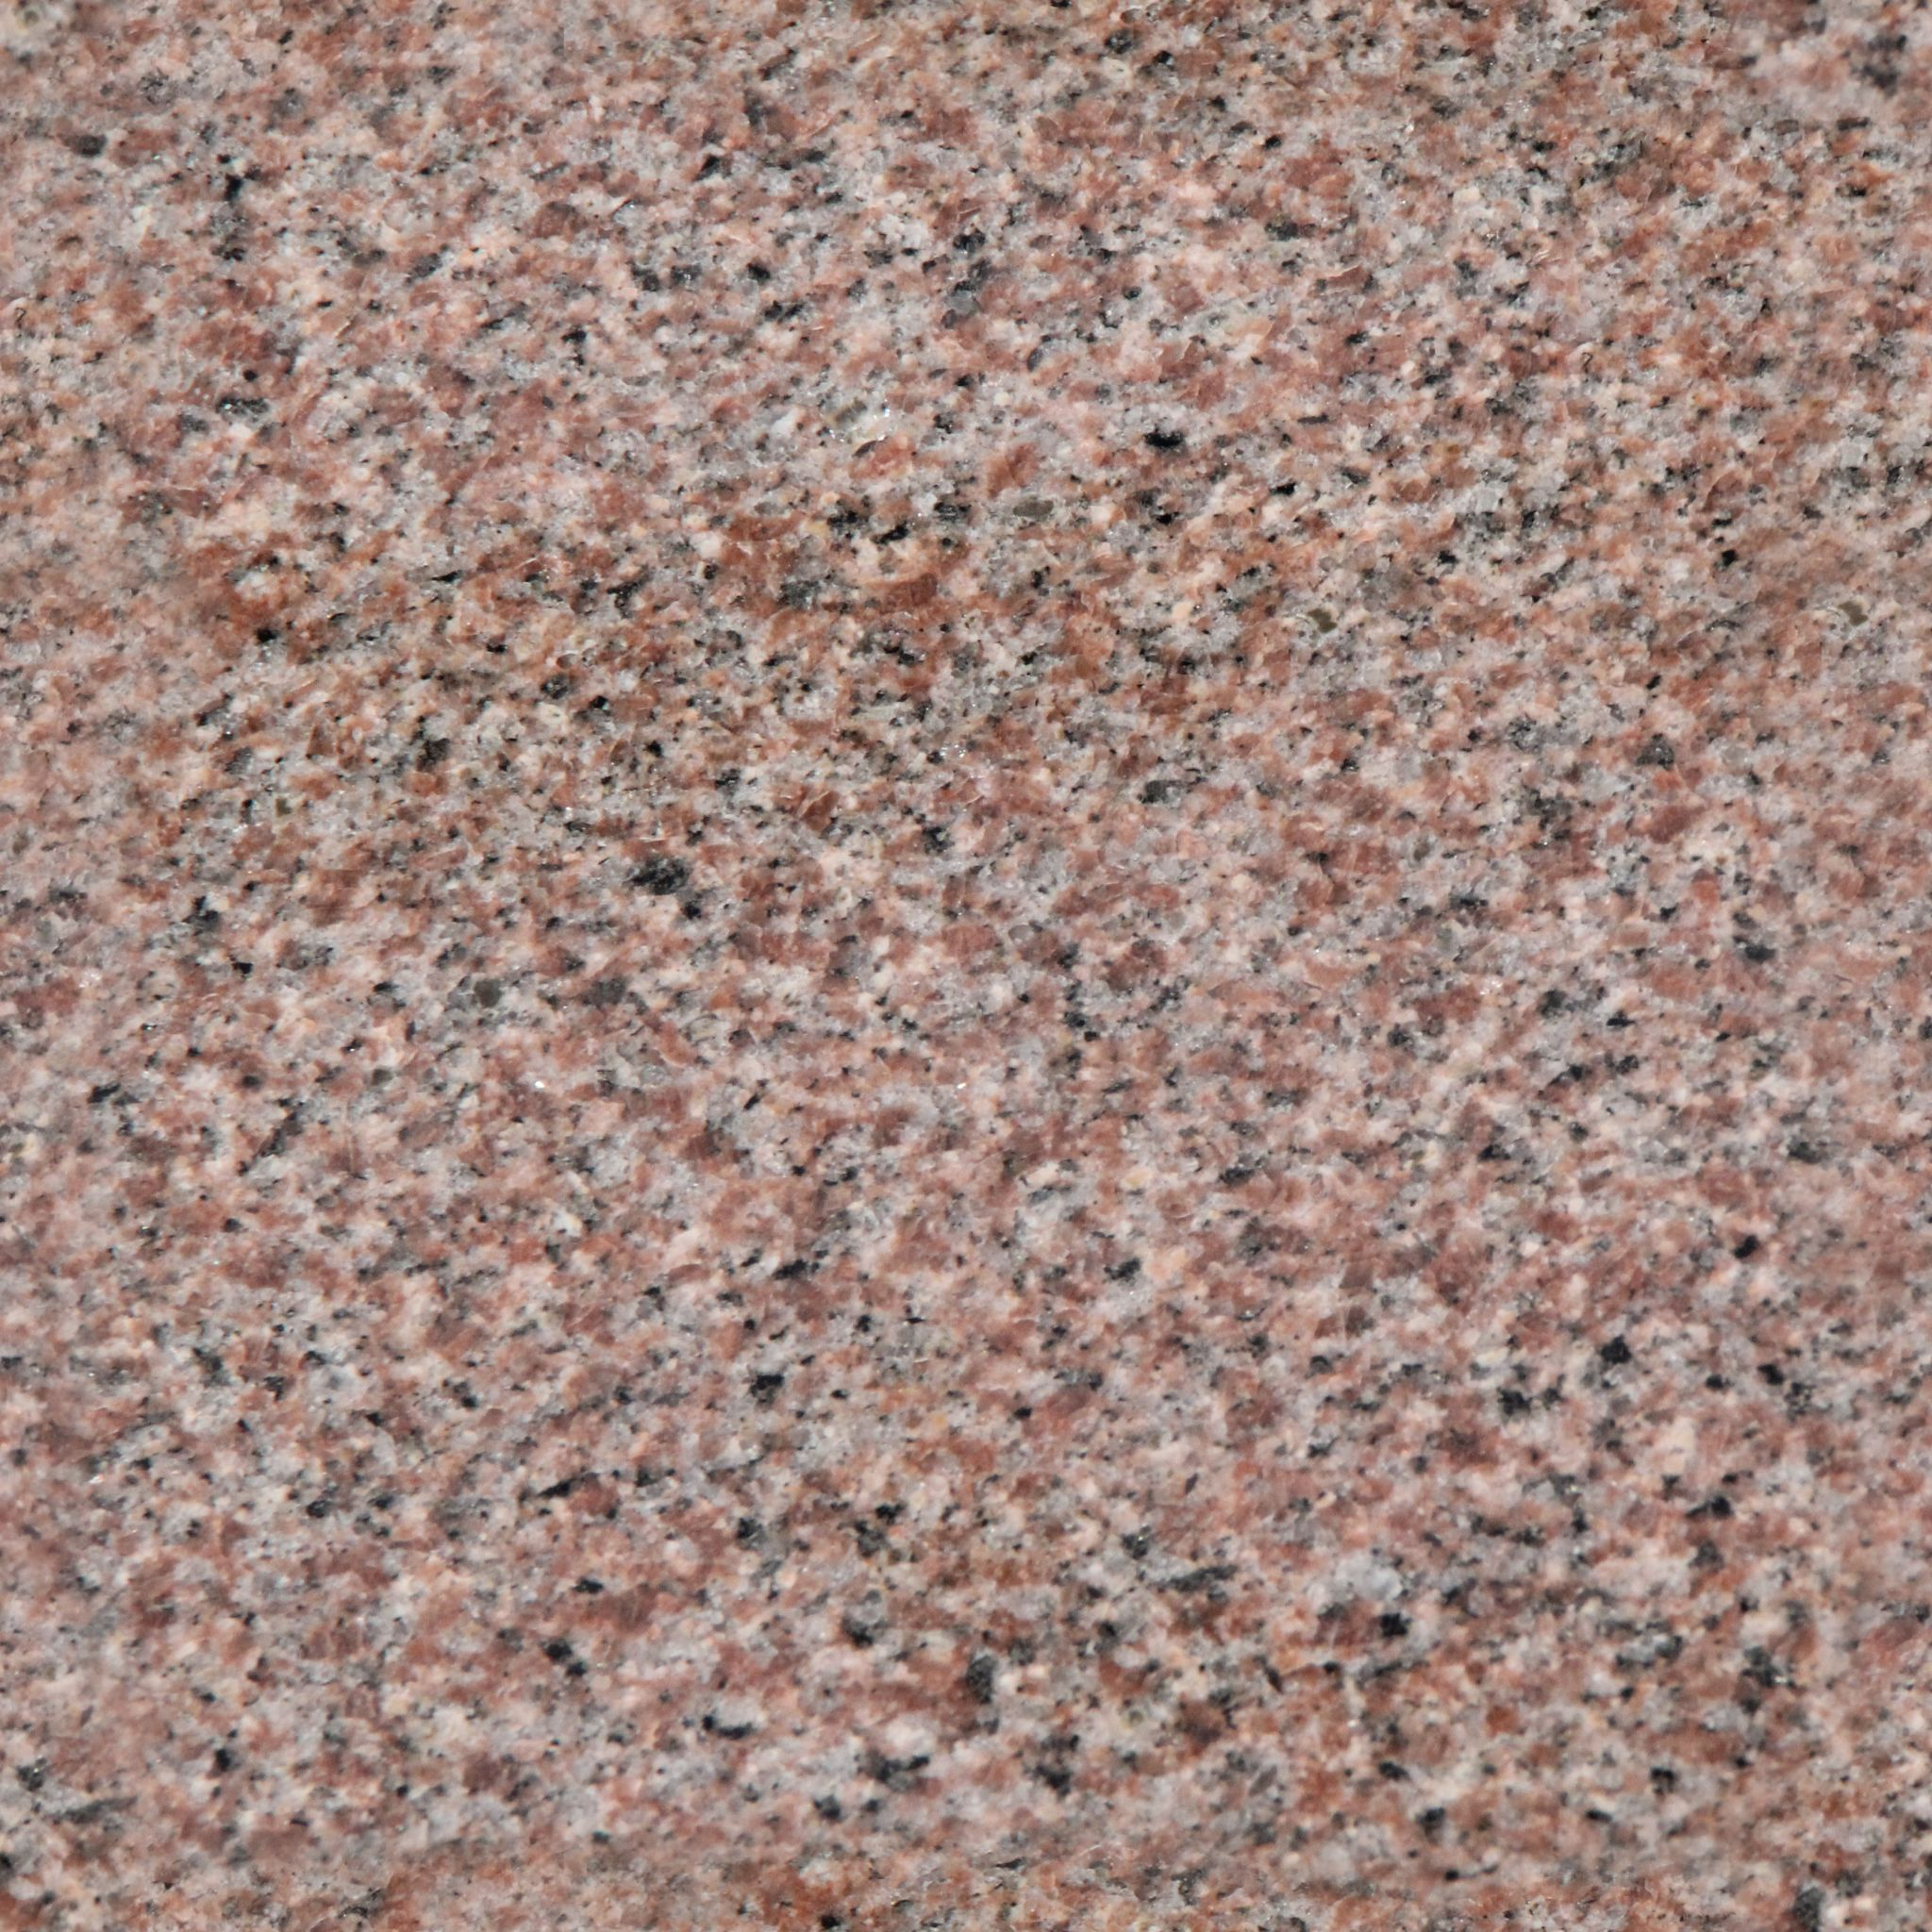 Granite Texture - Red,Pink and Black - Seamless Texture with ...